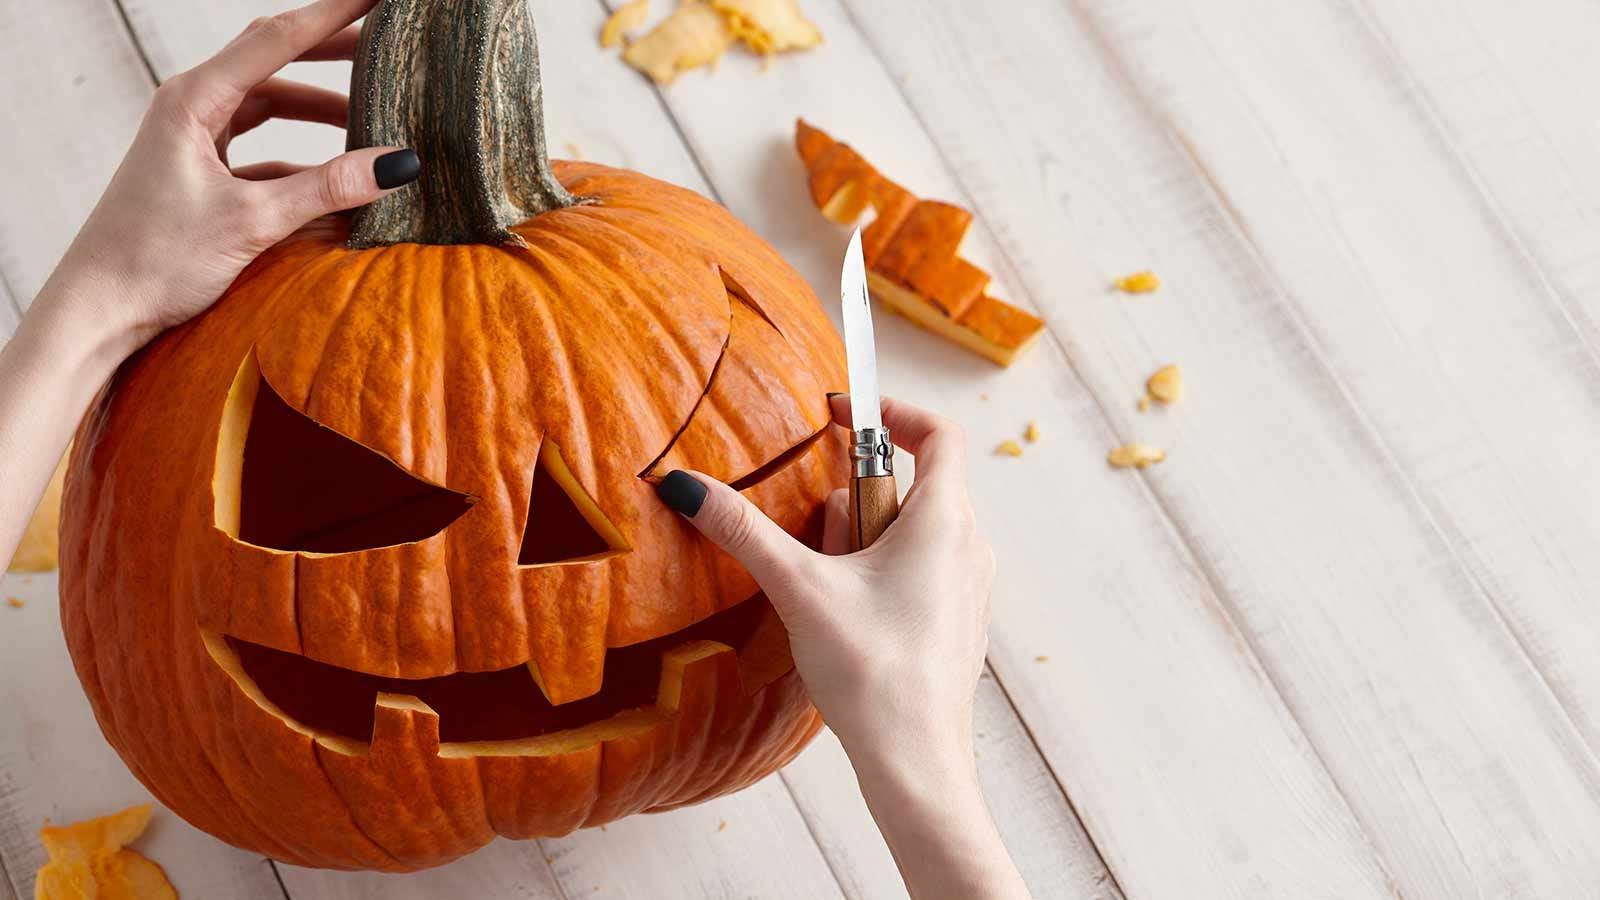 A woman's hands carving a jack-o'-lantern.